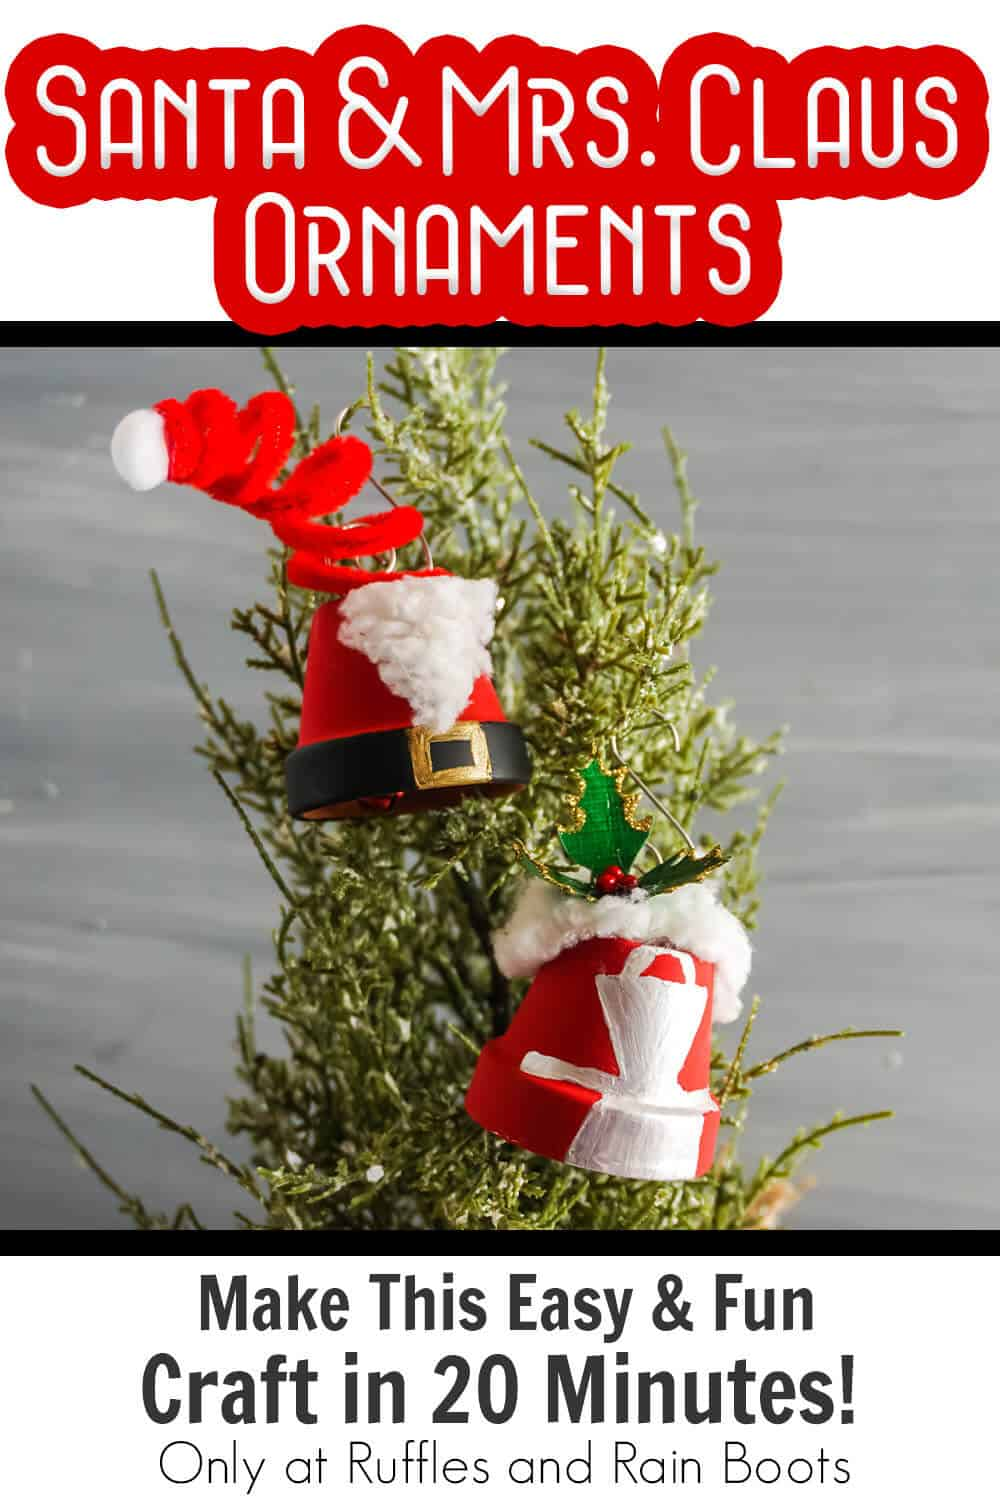 christmas santa ornament from a terra cotta pot with text which reads santa & mrs claus ornaments make this easy & fun craft in 20 minutes!